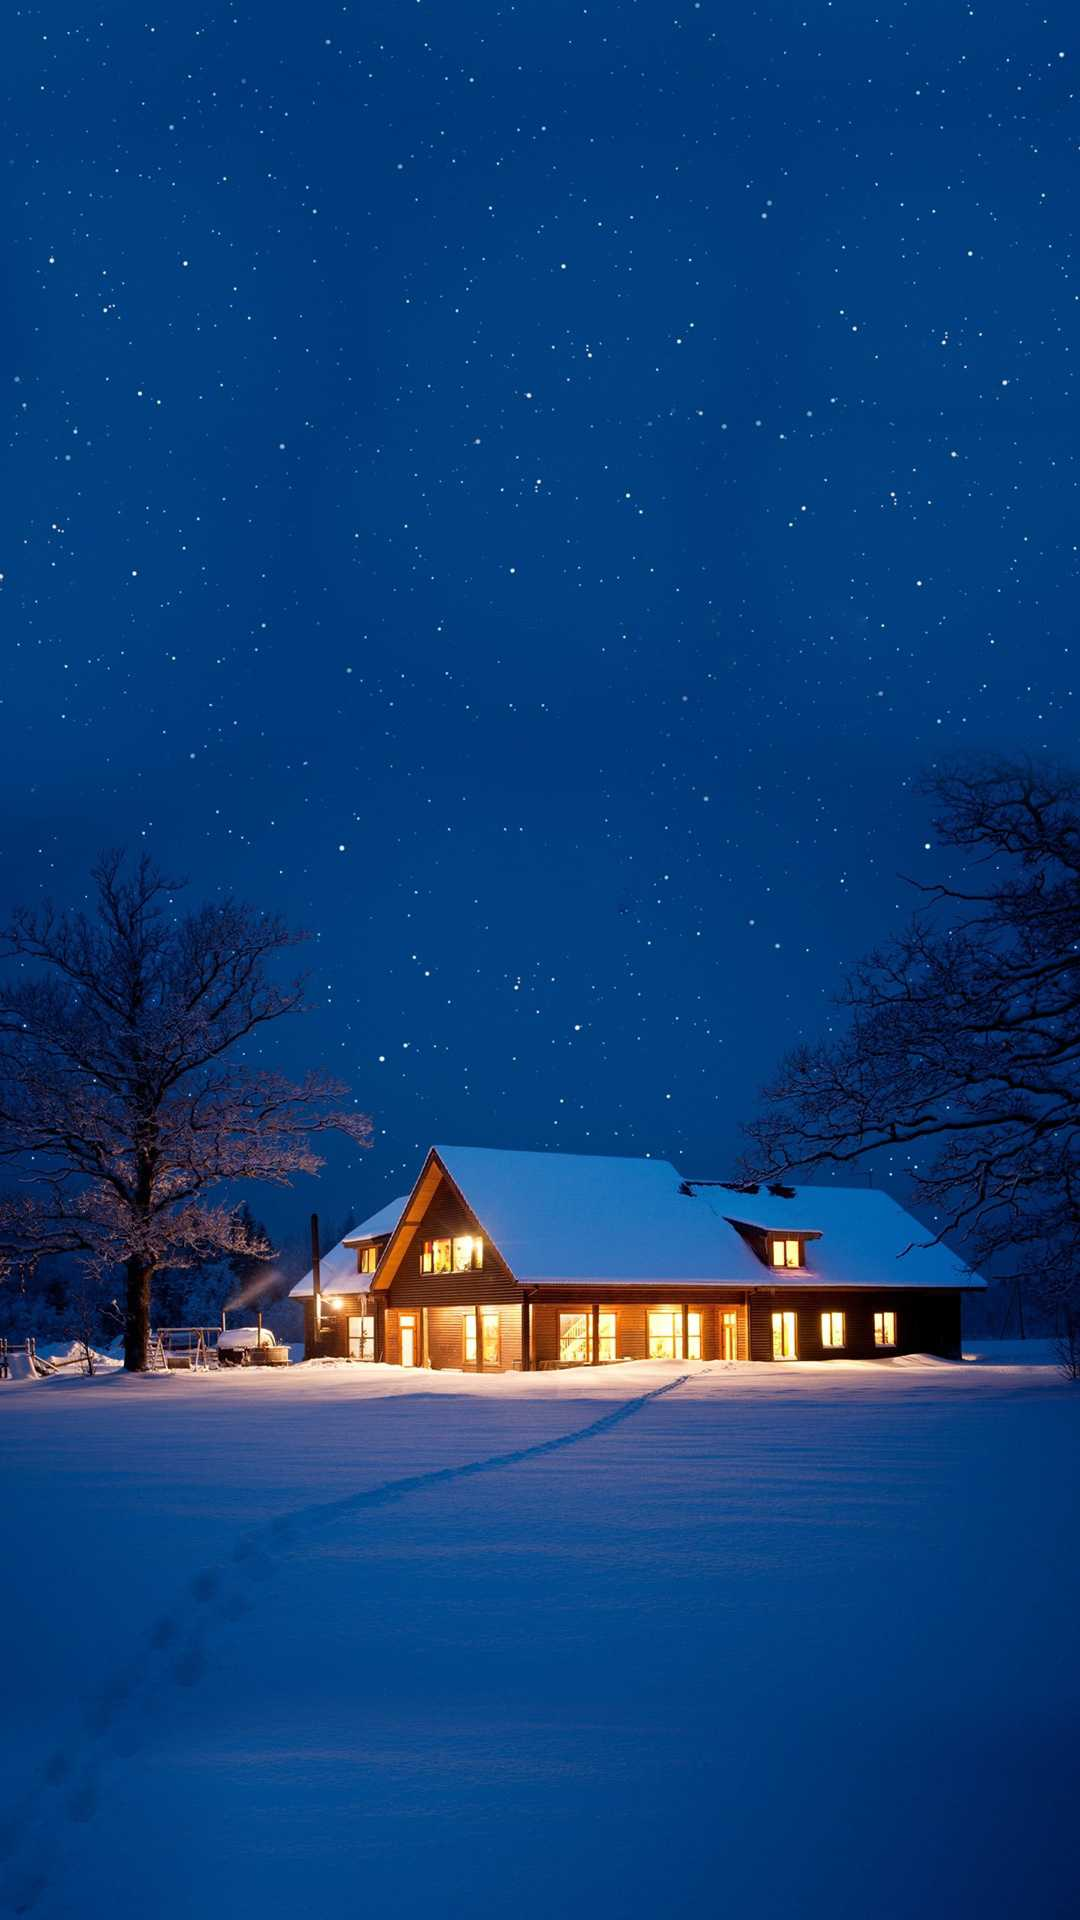 Cute Christmas Wallpaper Quotes Snow House Christmas Night Iphone Wallpaper Iphone